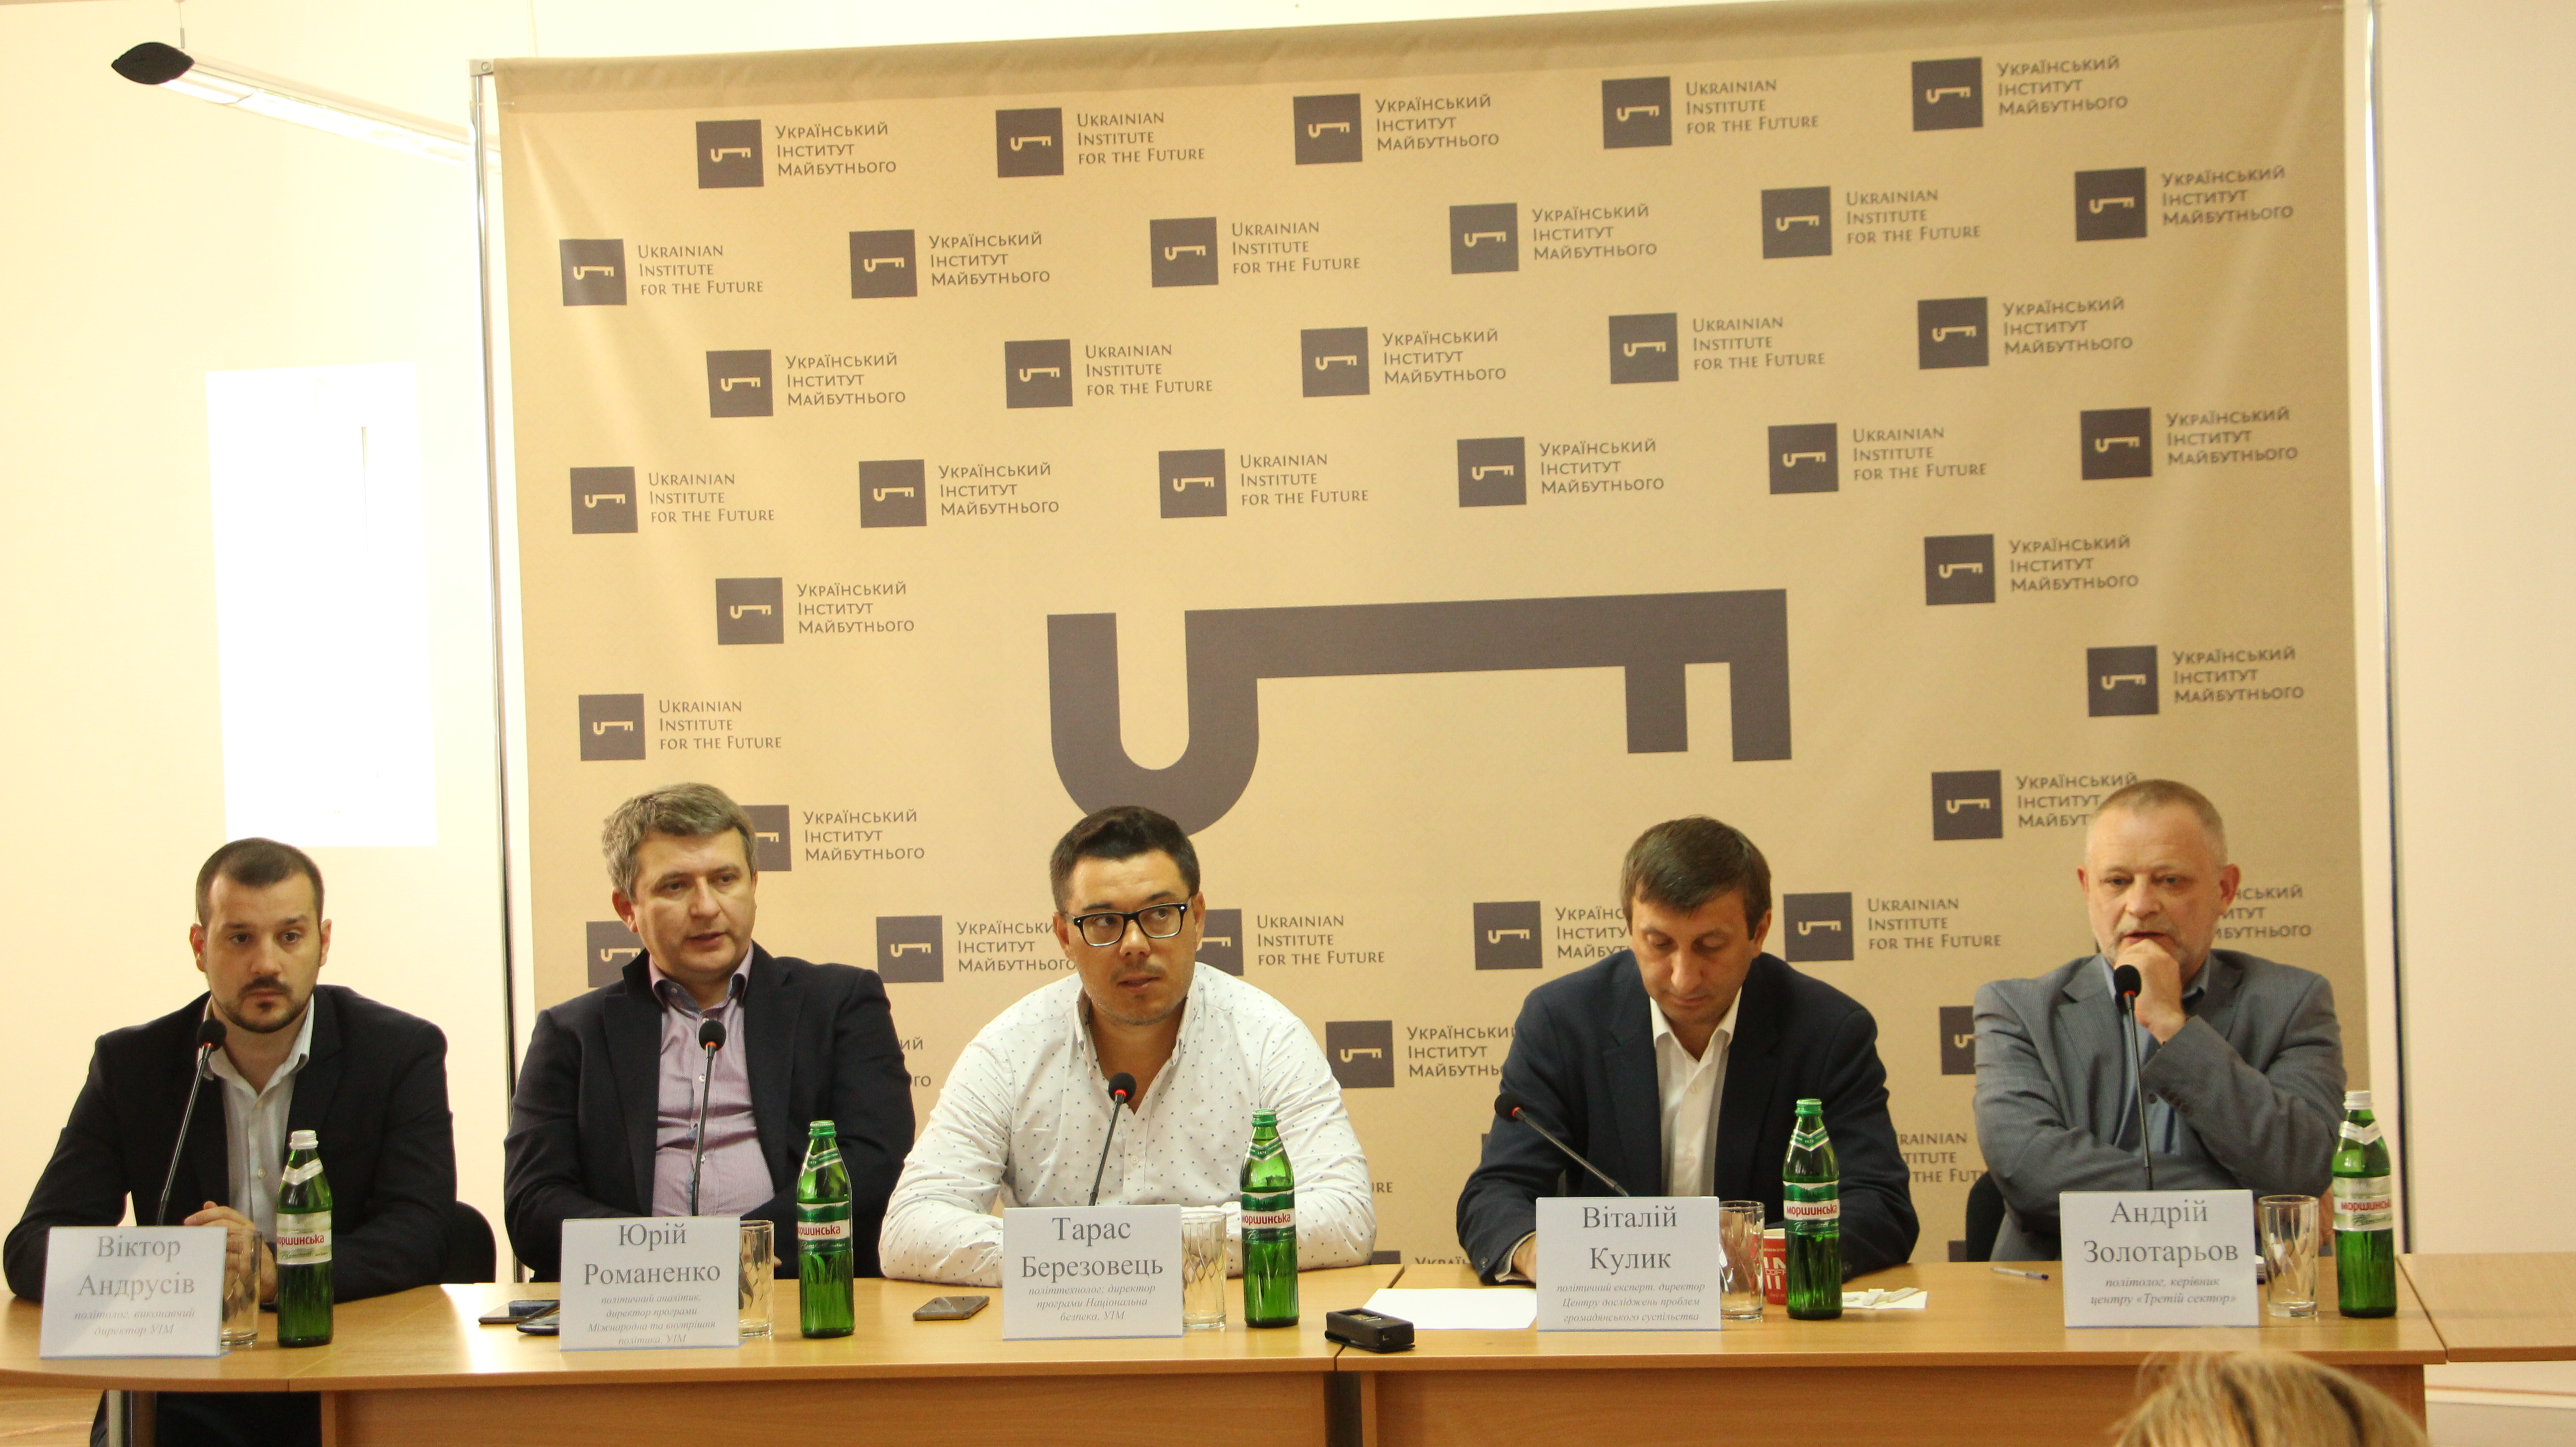 What to expect in Ukraine in the new political season: results of the press conference